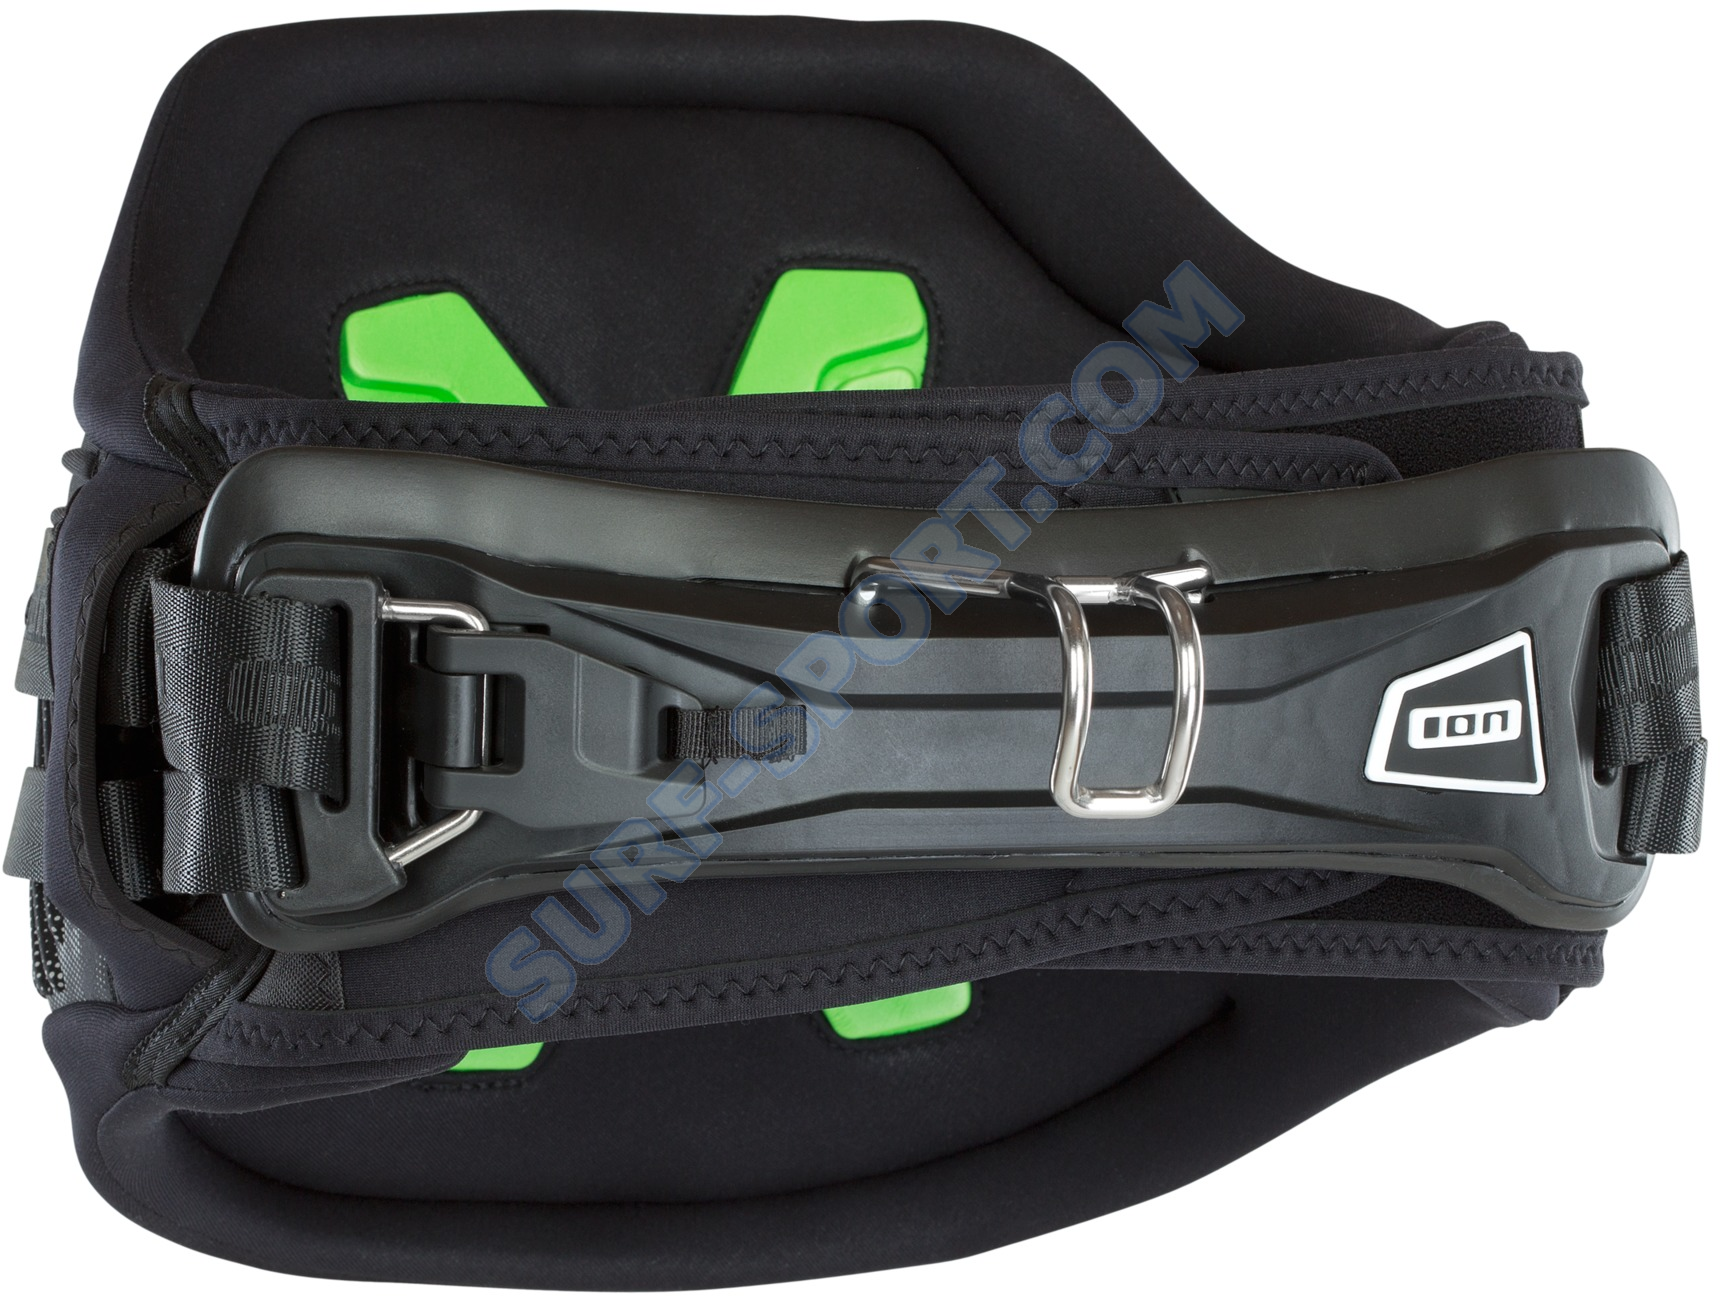 48902-4746_trapez windsurf ion surf icon 6 harness-2019-black-front.png